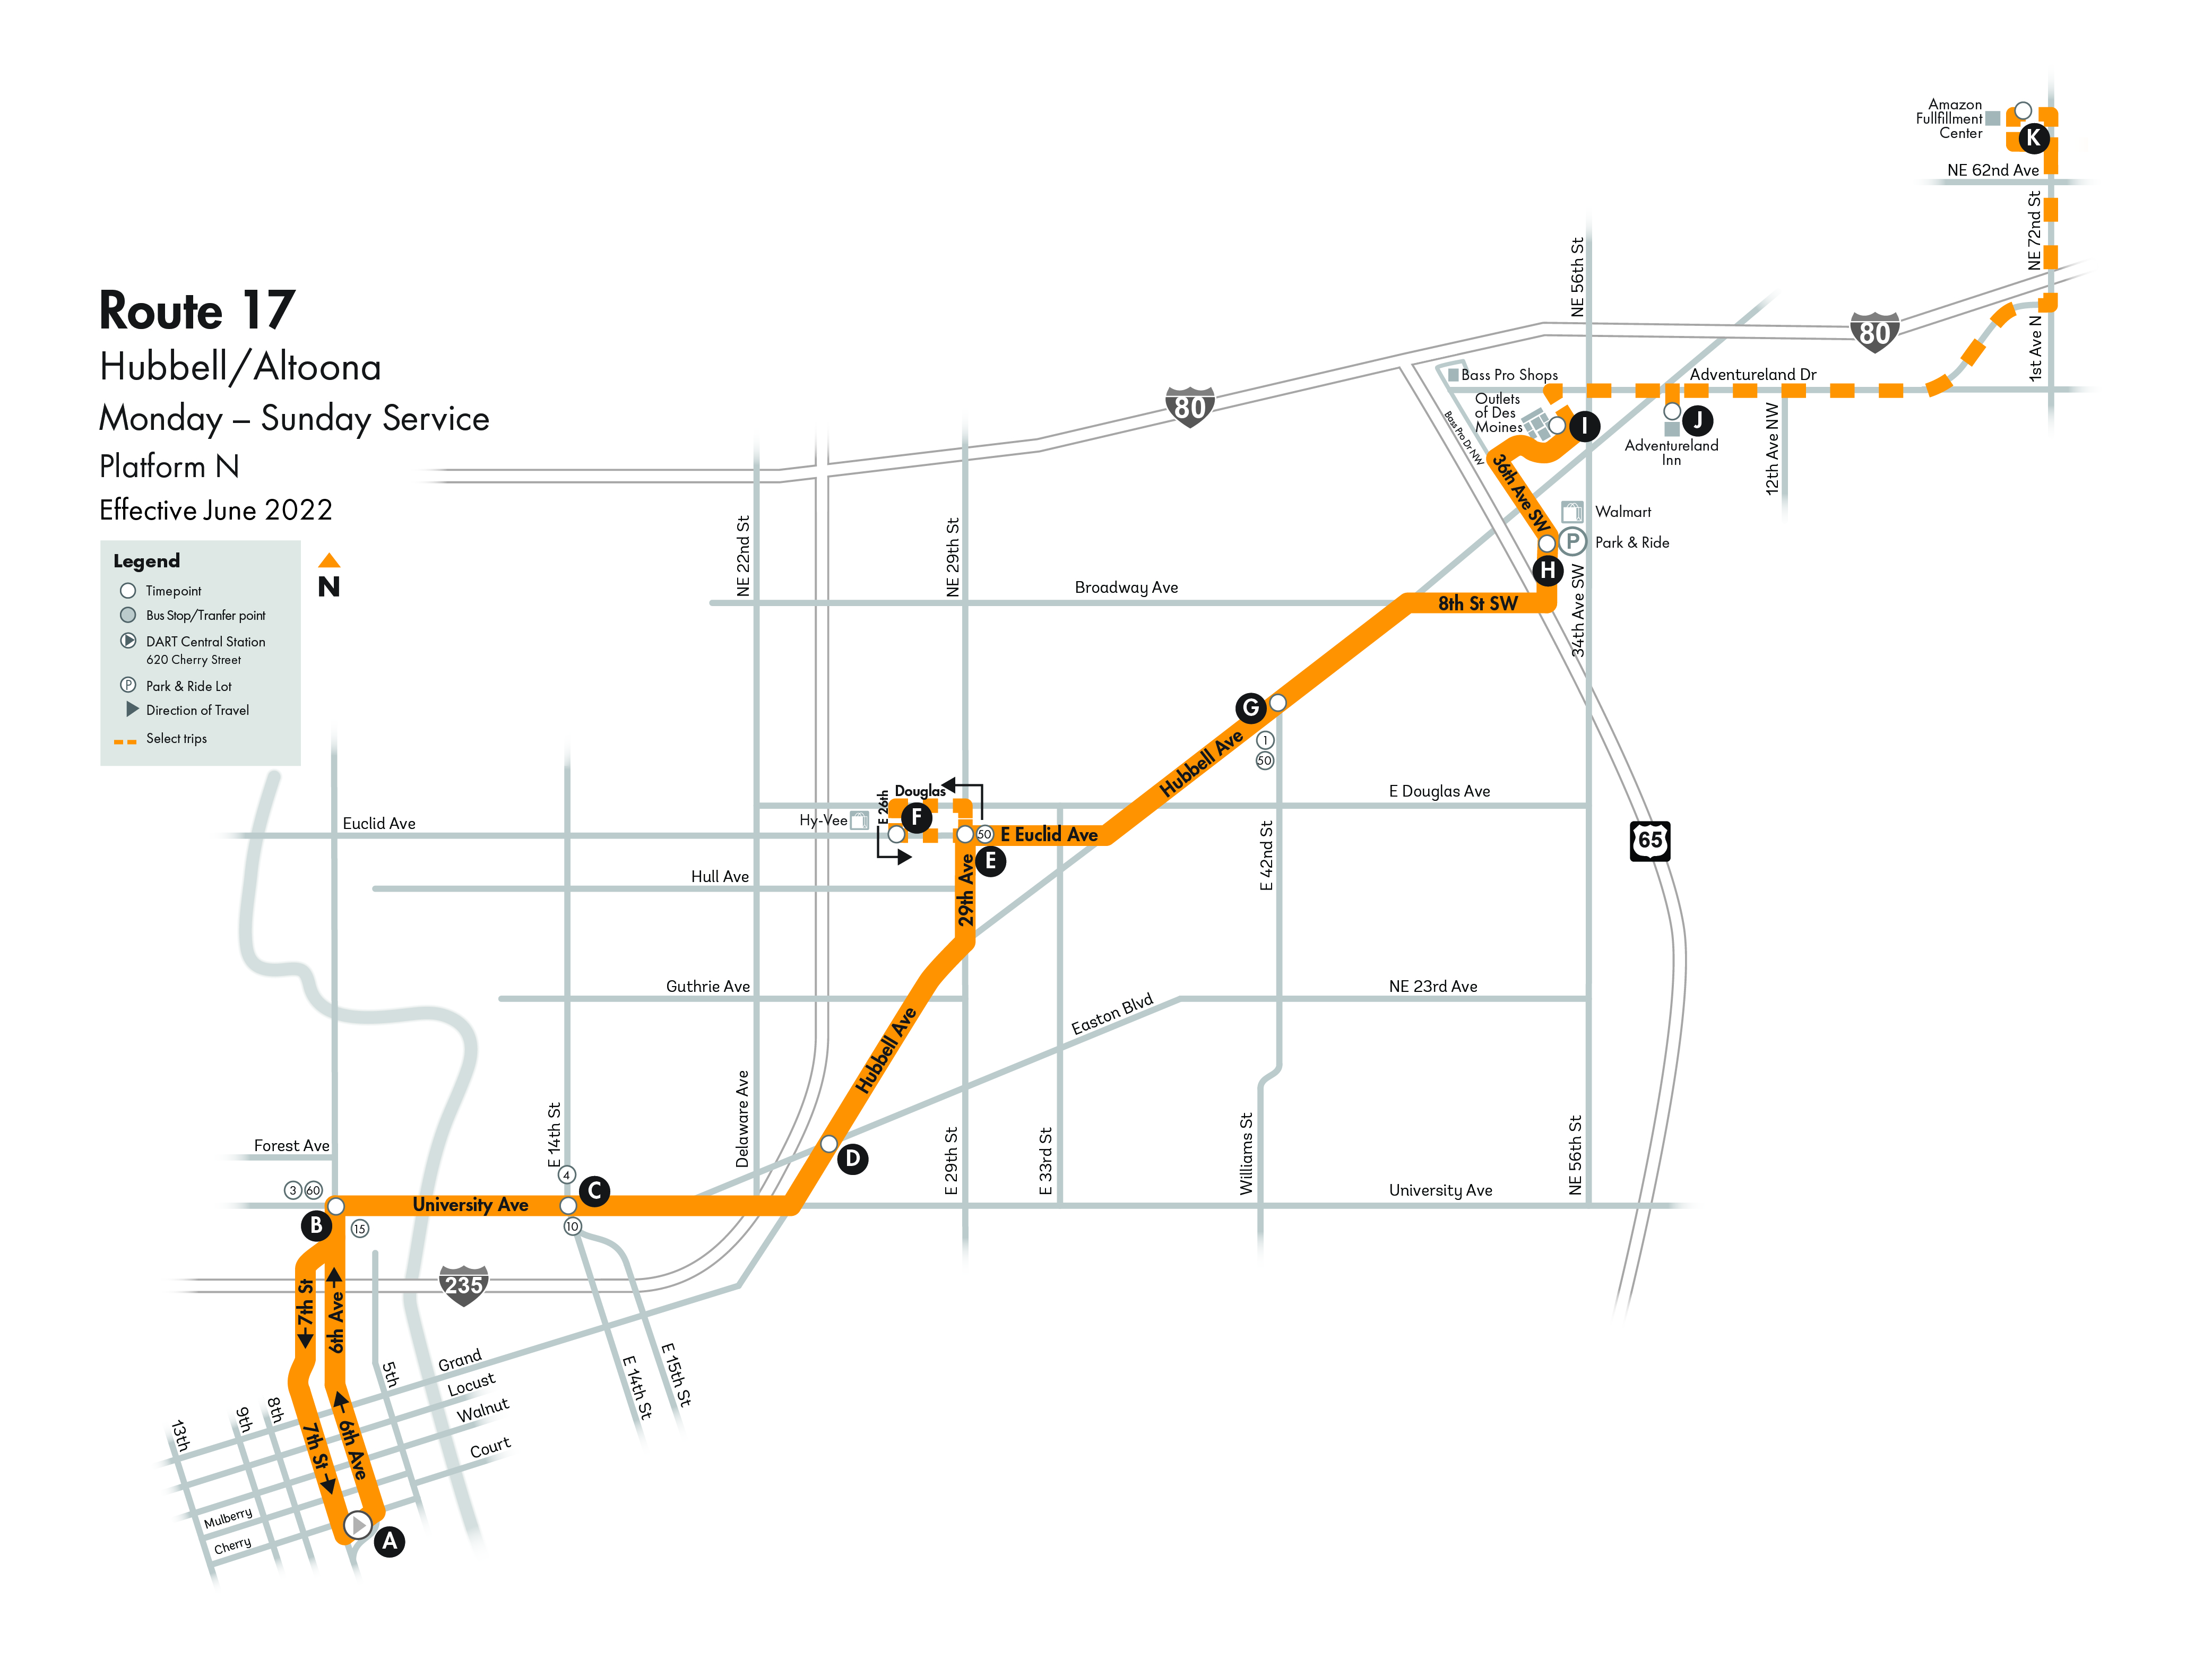 DART Local Route 17 - Hubbell/Altoona Map